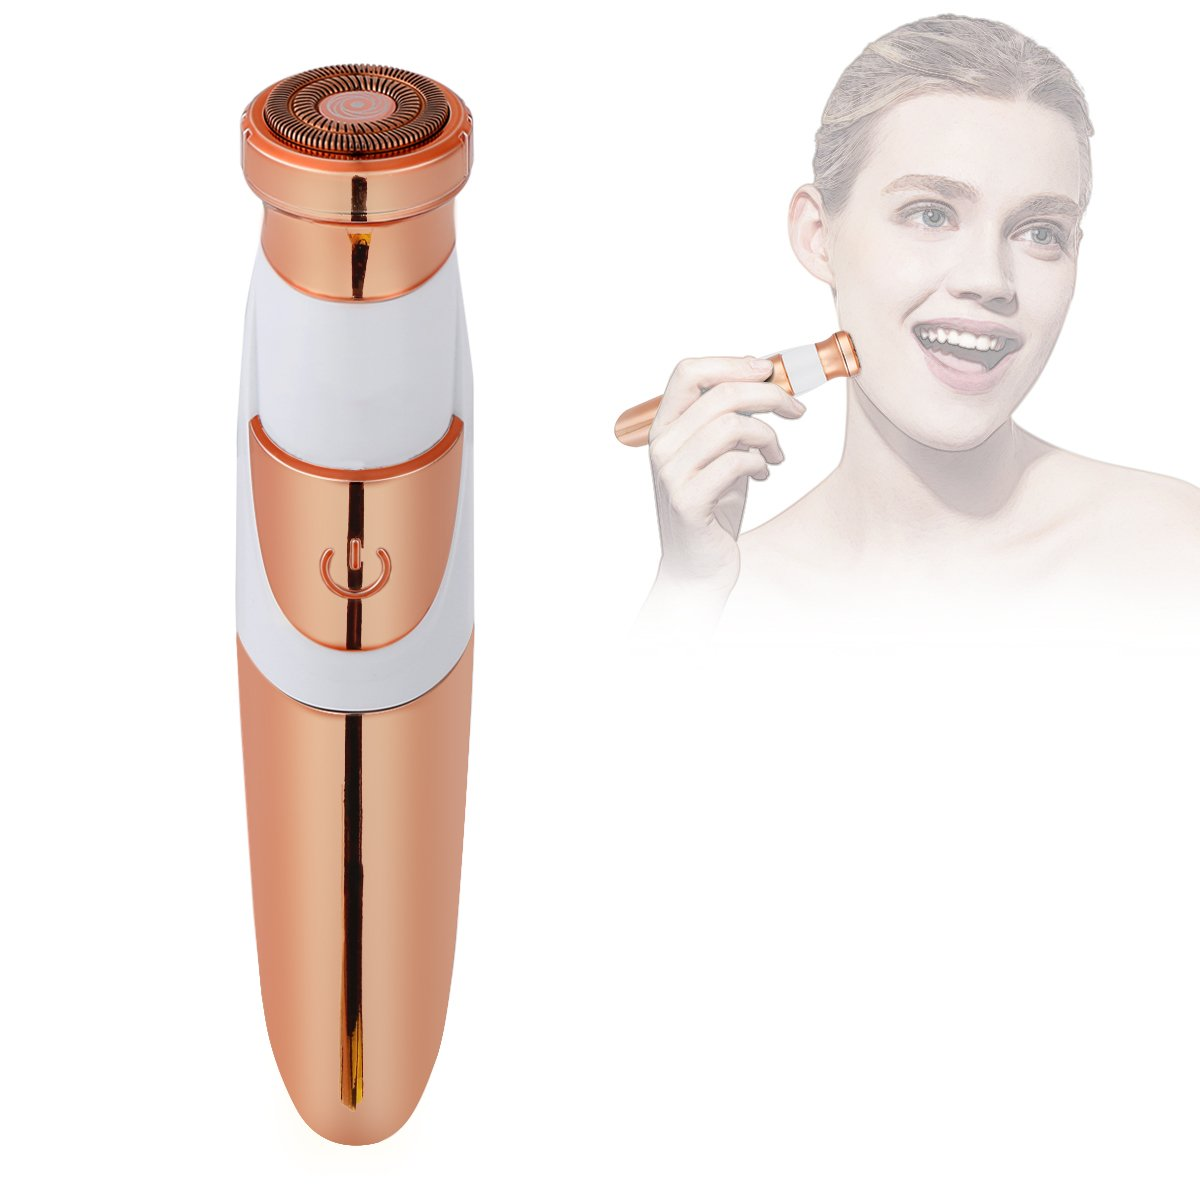 ARTIFUN Professional Electric Hair Removal for Women, Portable Battery Powered Painless Flawless Hair Remover Trimmer for Facial, Armpit, Upper Lip, Chin, Bikini Line Area, Arm, Leg and Full Body